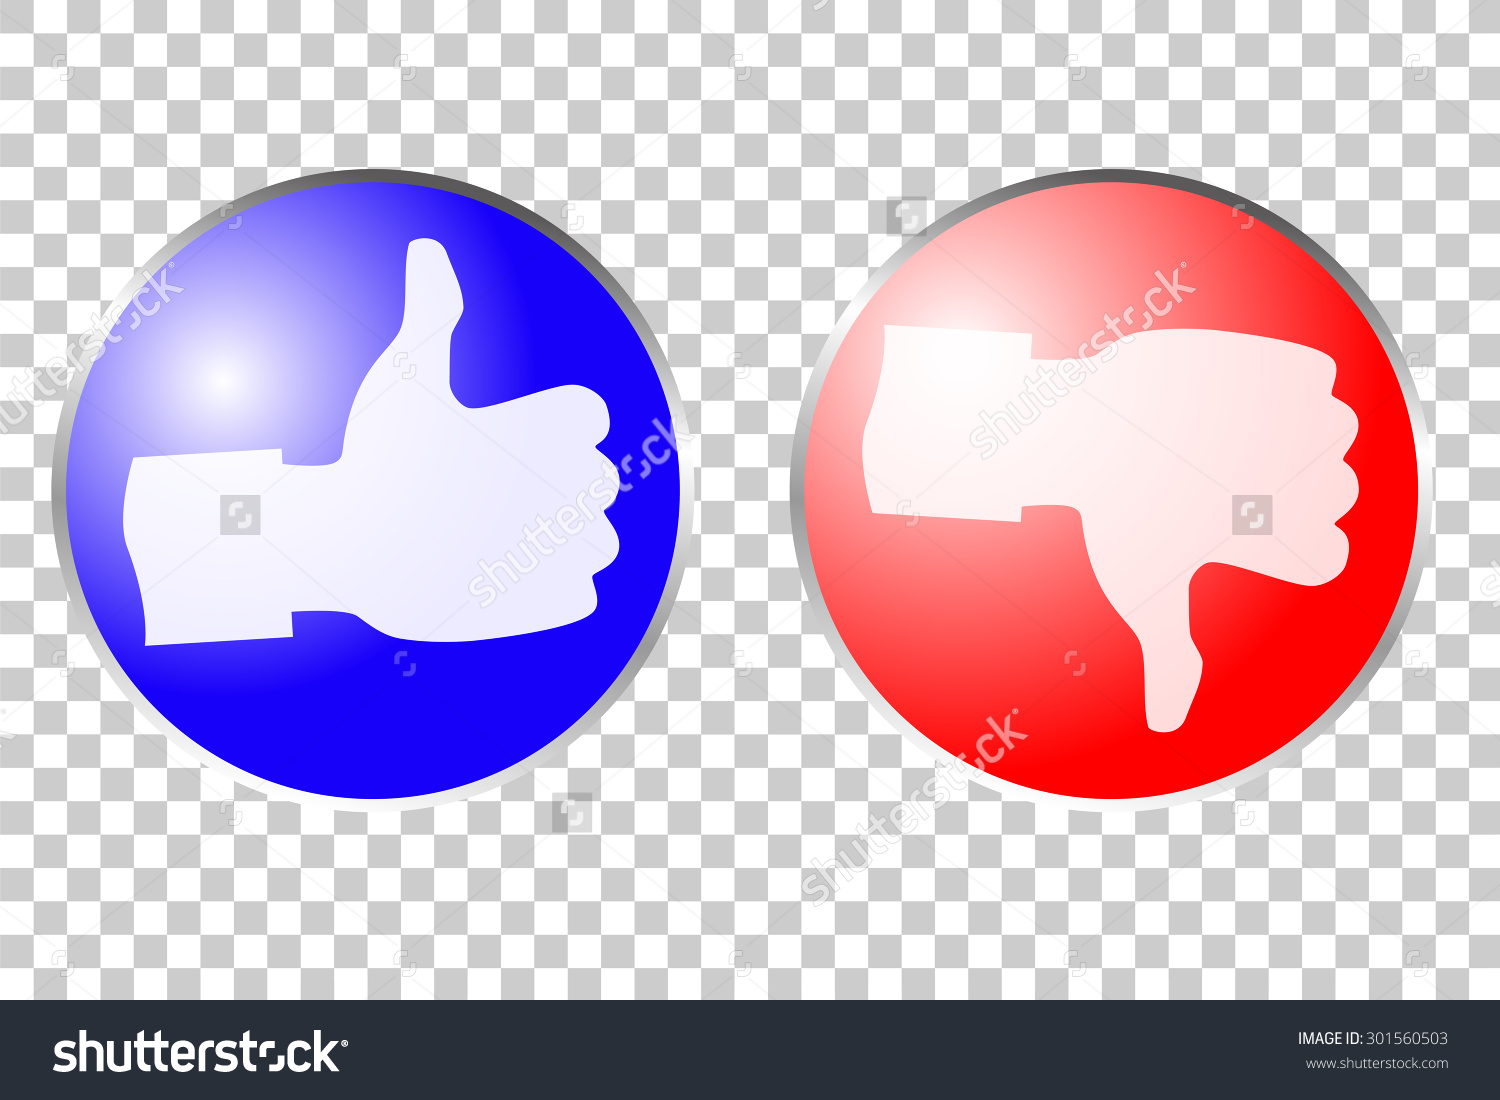 Thumbs up thumbs down black background clipart free graphic download Icon Thumb Thumb Down Transparent Effect Stock Vector 301560503 ... graphic download